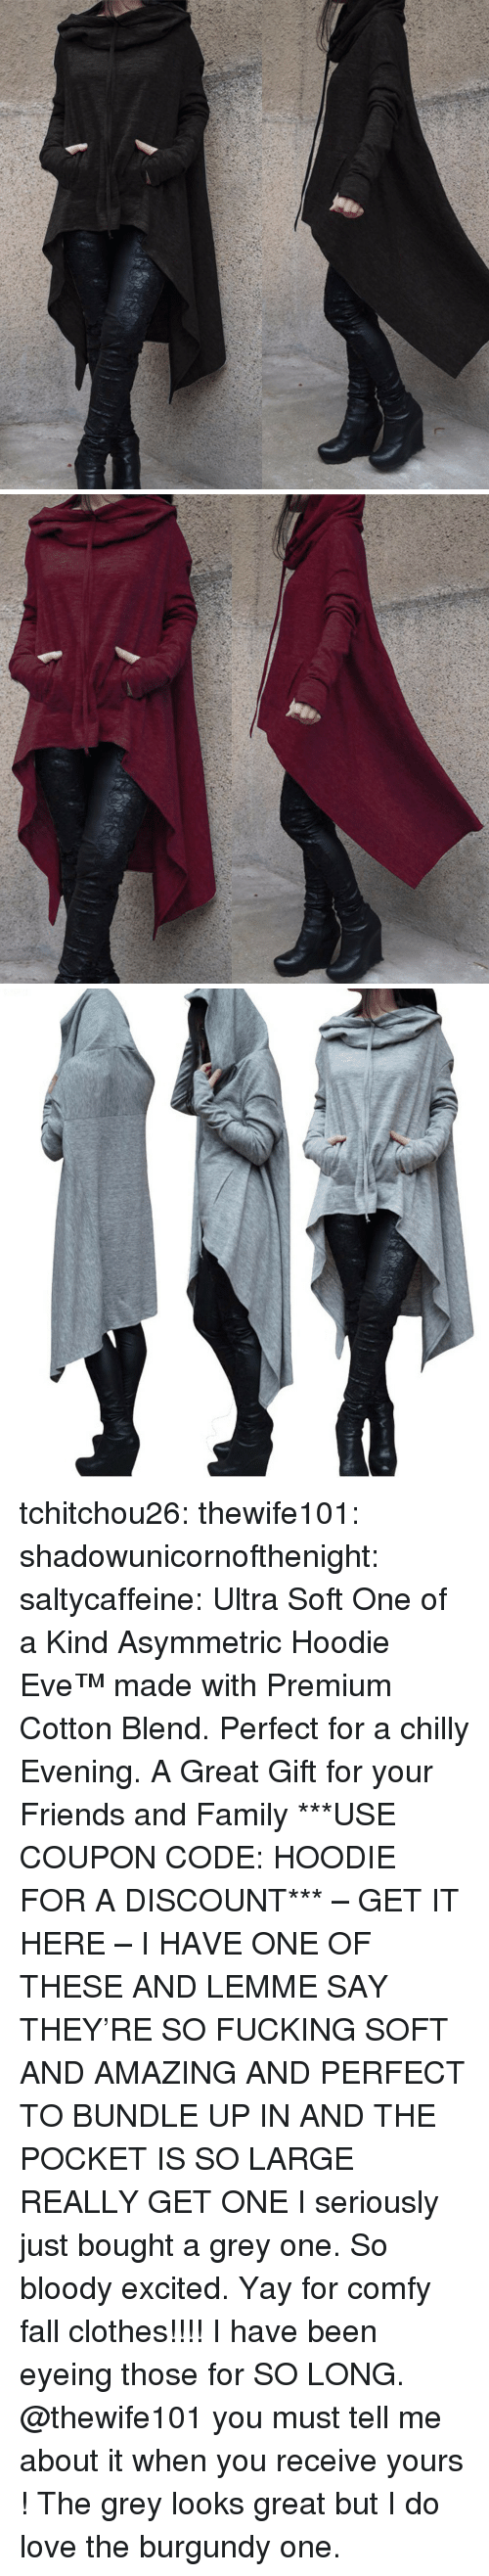 Clothes, Fall, and Family: tchitchou26:  thewife101: shadowunicornofthenight:  saltycaffeine:  Ultra Soft One of a Kind Asymmetric Hoodie Eve™made with Premium Cotton Blend. Perfect for a chilly Evening. A Great Gift for your Friends and Family ***USE COUPON CODE: HOODIE FOR A DISCOUNT*** – GET IT HERE –   I HAVE ONE OF THESE AND LEMME SAY THEY'RE SO FUCKING SOFT AND AMAZING AND PERFECT TO BUNDLE UP IN AND THE POCKET IS SO LARGE REALLY GET ONE   I seriously just bought a grey one. So bloody excited. Yay for comfy fall clothes!!!!   I have been eyeing those for SO LONG. @thewife101 you must tell me about it when you receive yours ! The grey looks great but I do love the burgundy one.